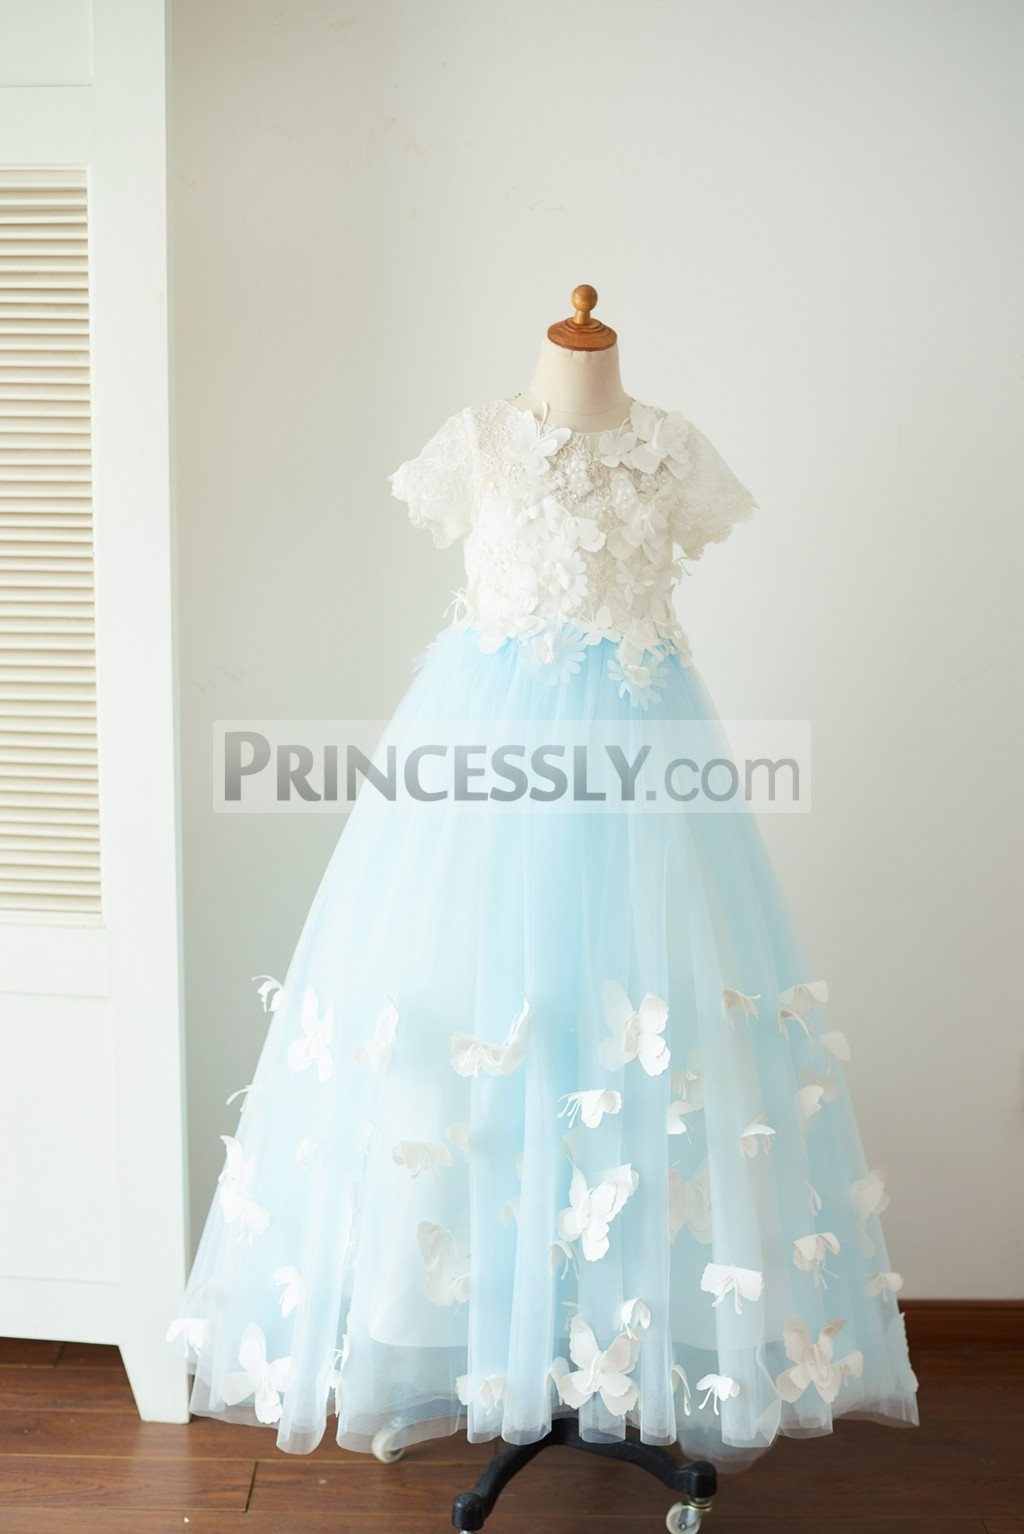 Princessly.com-K1003657-Ivory Lace Blue Tulle Short Sleeves Wedding Flower Girl Dress Full Length Party Dress with Butterfly-31